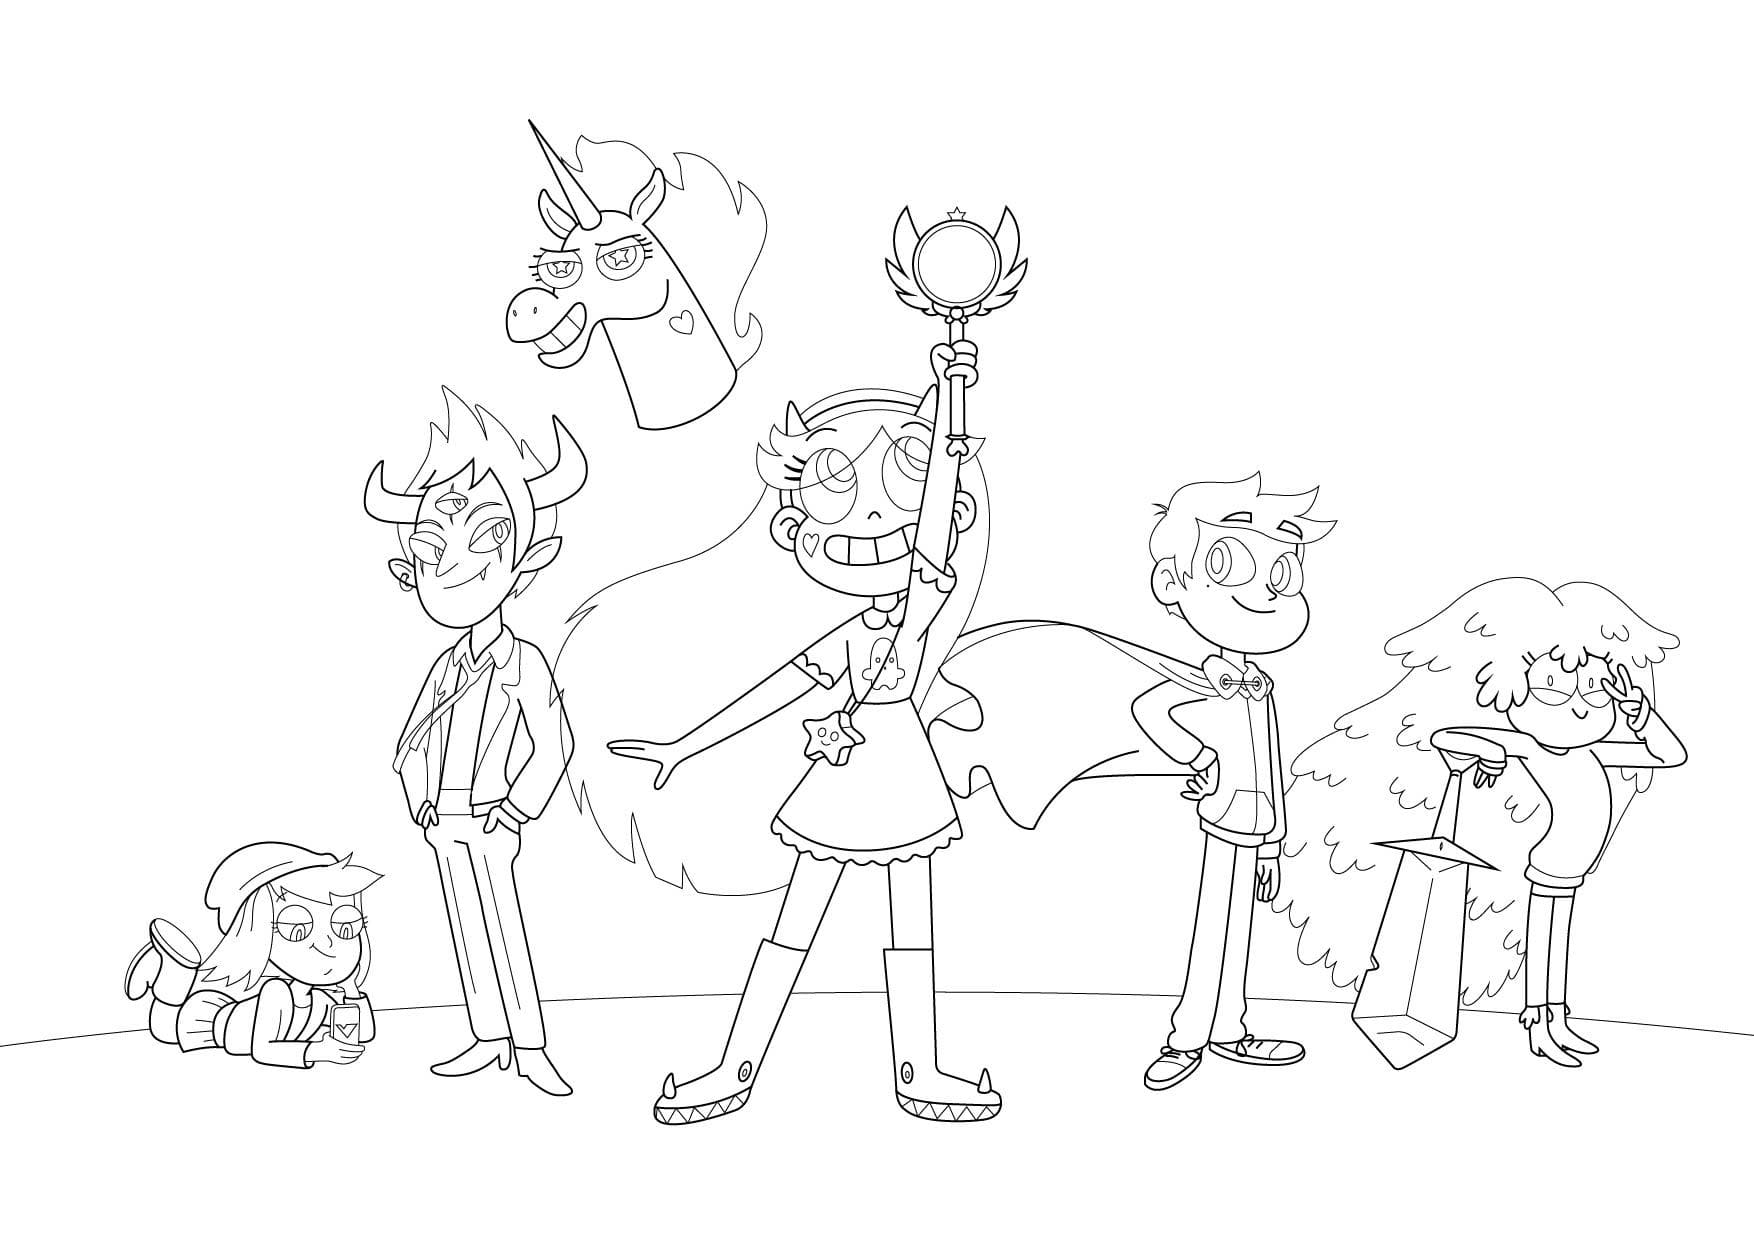 Ausmalbilder Star vs the Forces of Evil. Drucken Sie die Prinzessin